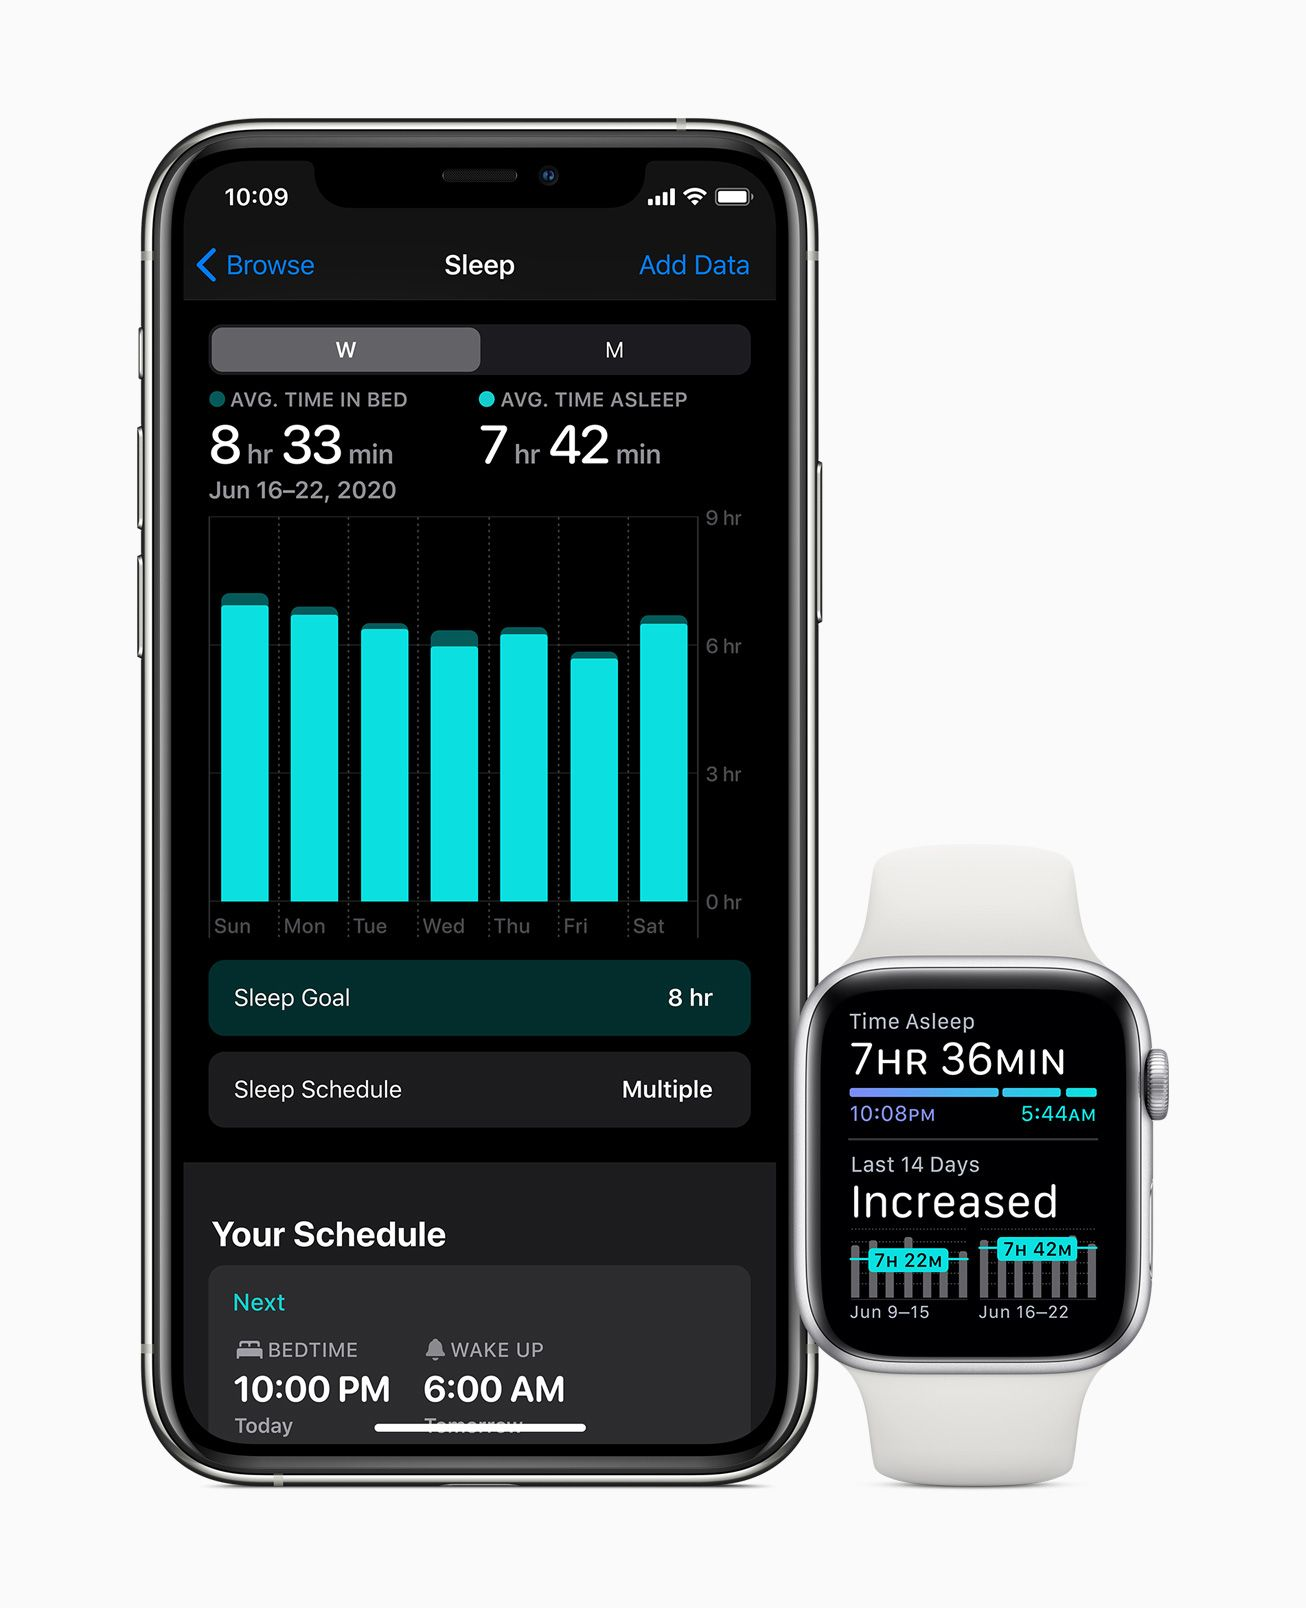 How to set up and use the Sleep app on Apple Watch in